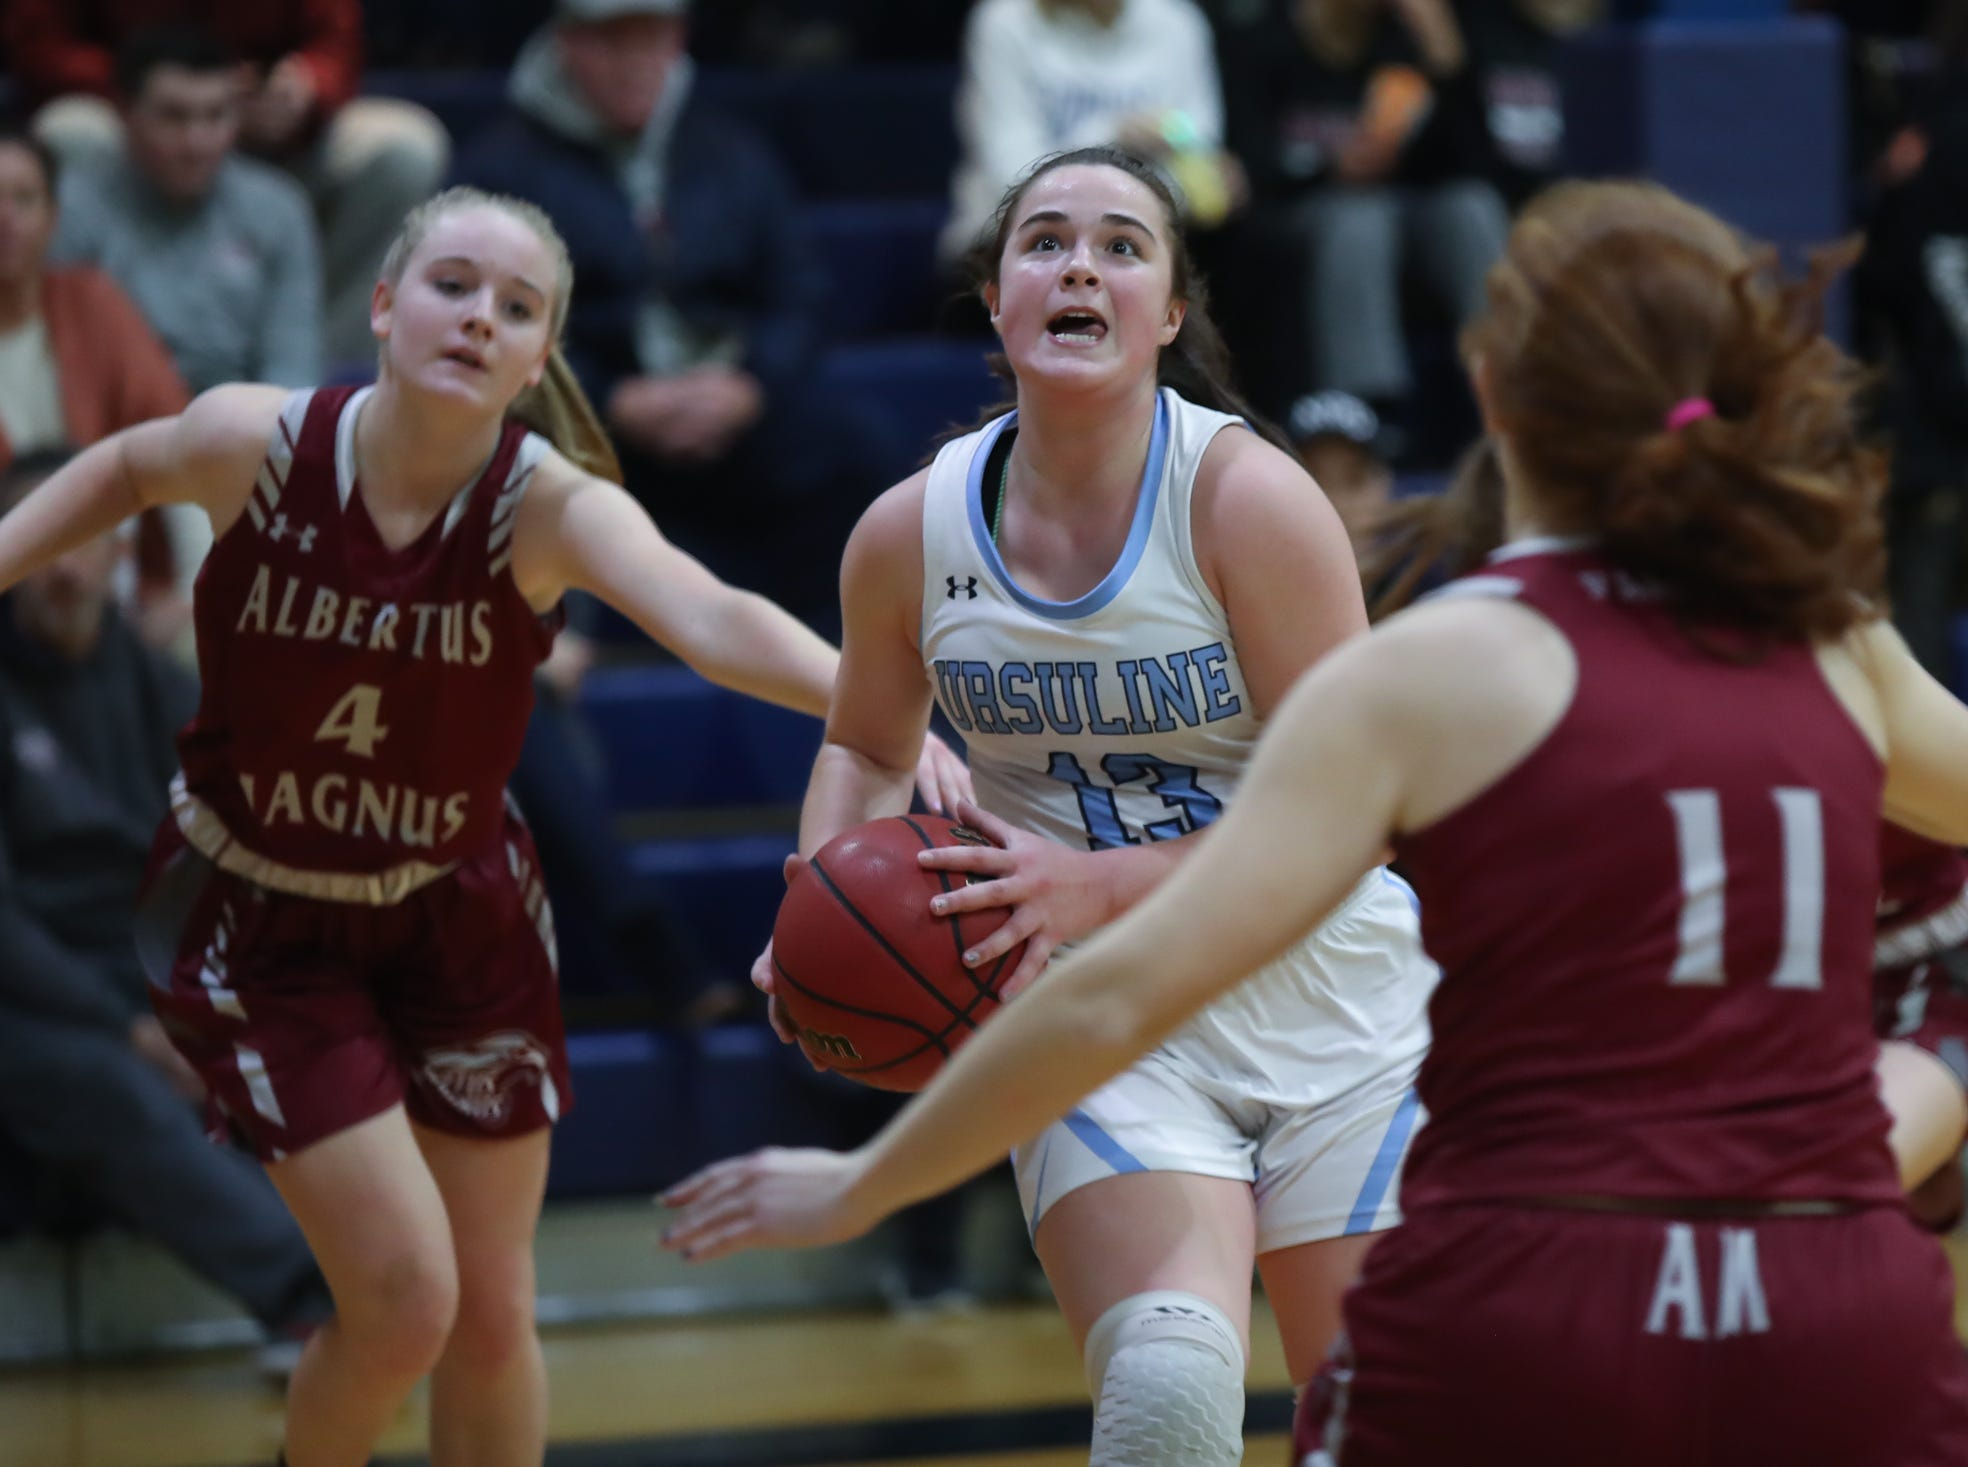 Ursuline's Jane McCauley (13) drives to the basket during girls varsity basketball action at The Ursuline School in New Rochelle on Wednesday, January 9, 2019.  Ursuline defeated Albertus 68-48.